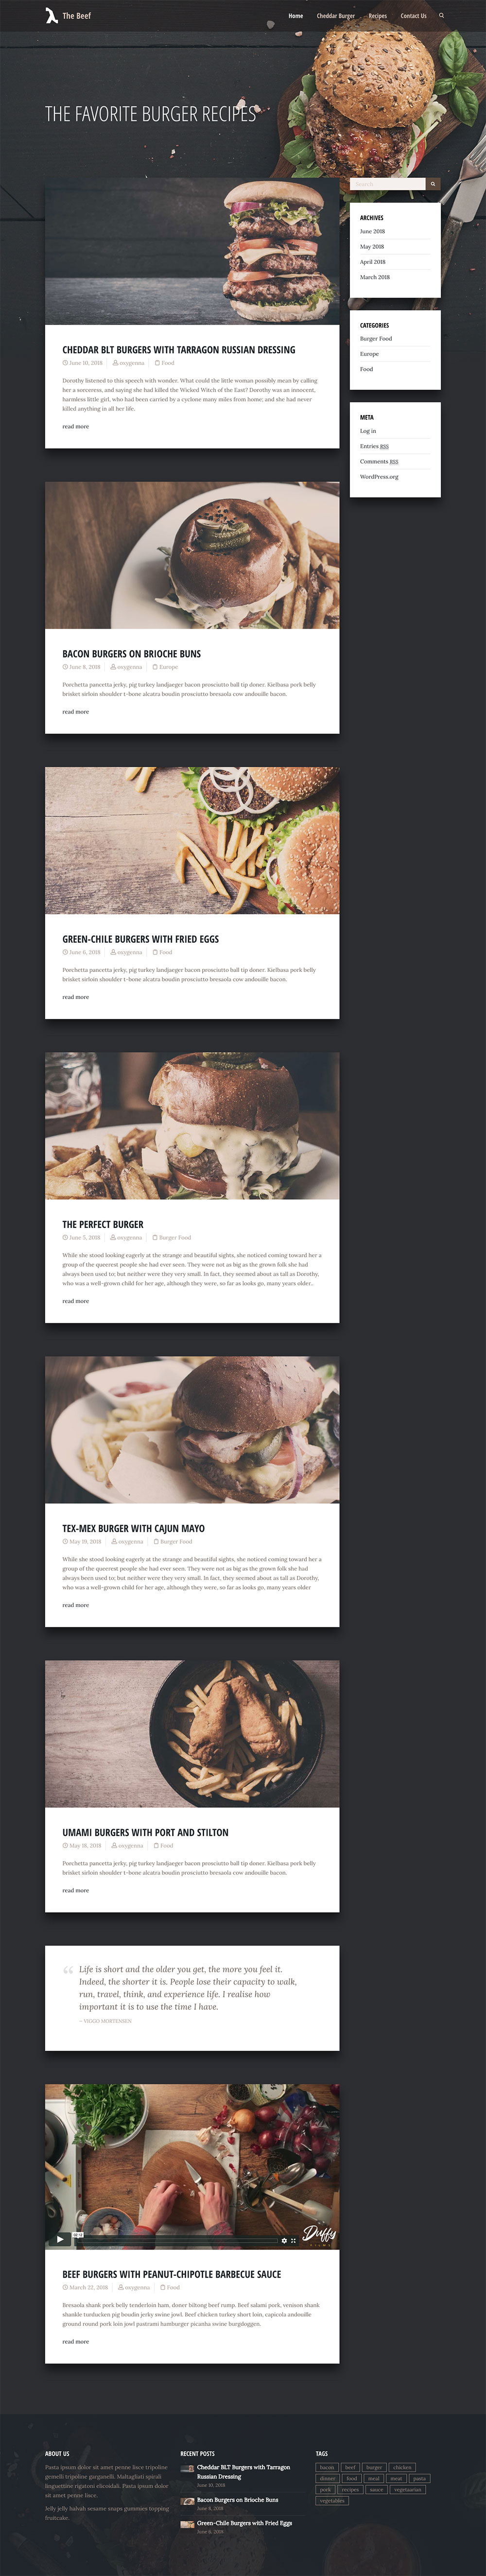 Wordpress Food Blog Demo